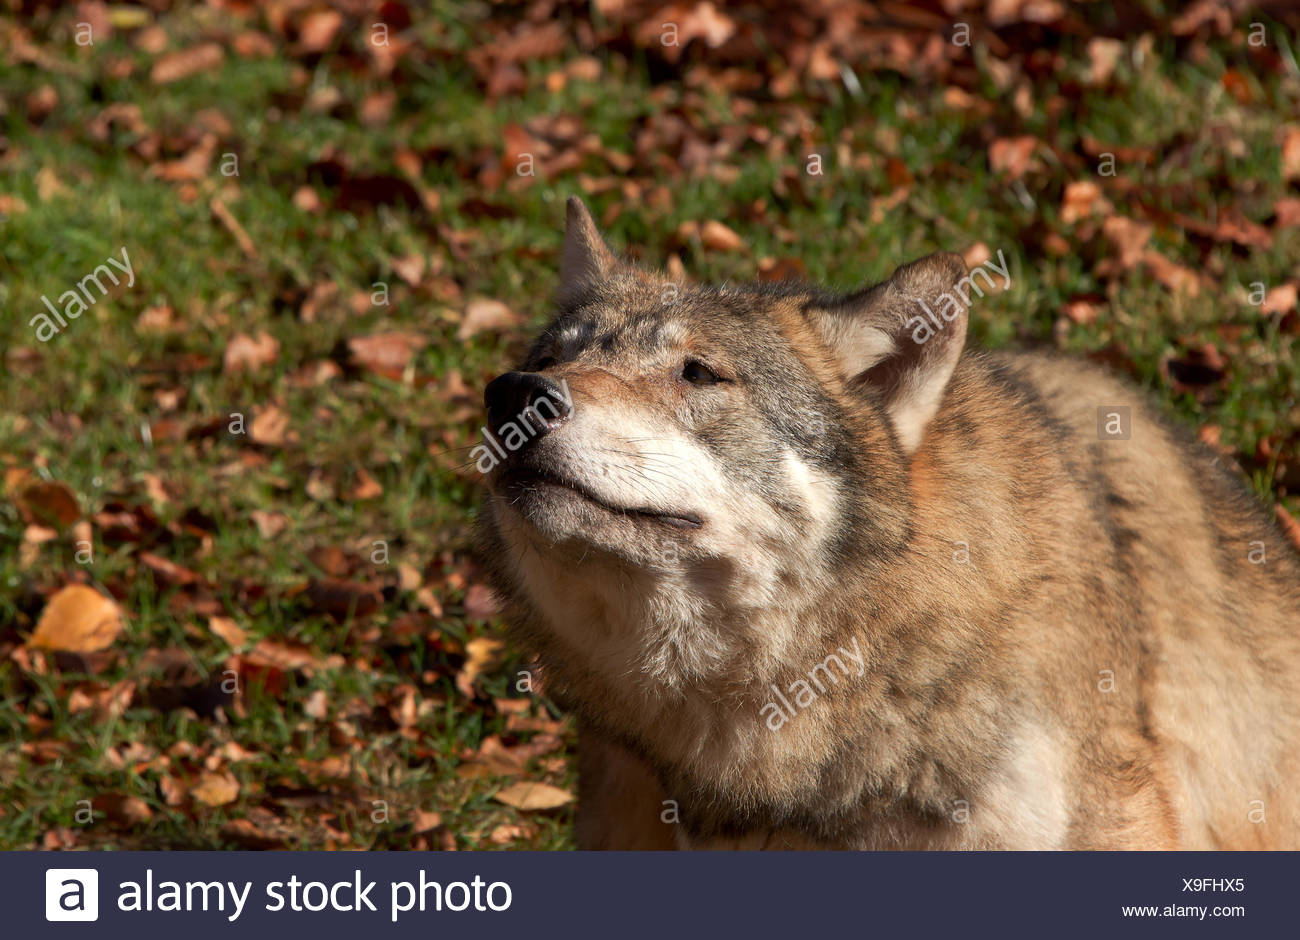 wild, portrait, eyes, zoo, dog, nature, head, fall, autumn, wild, face, Stock Photo